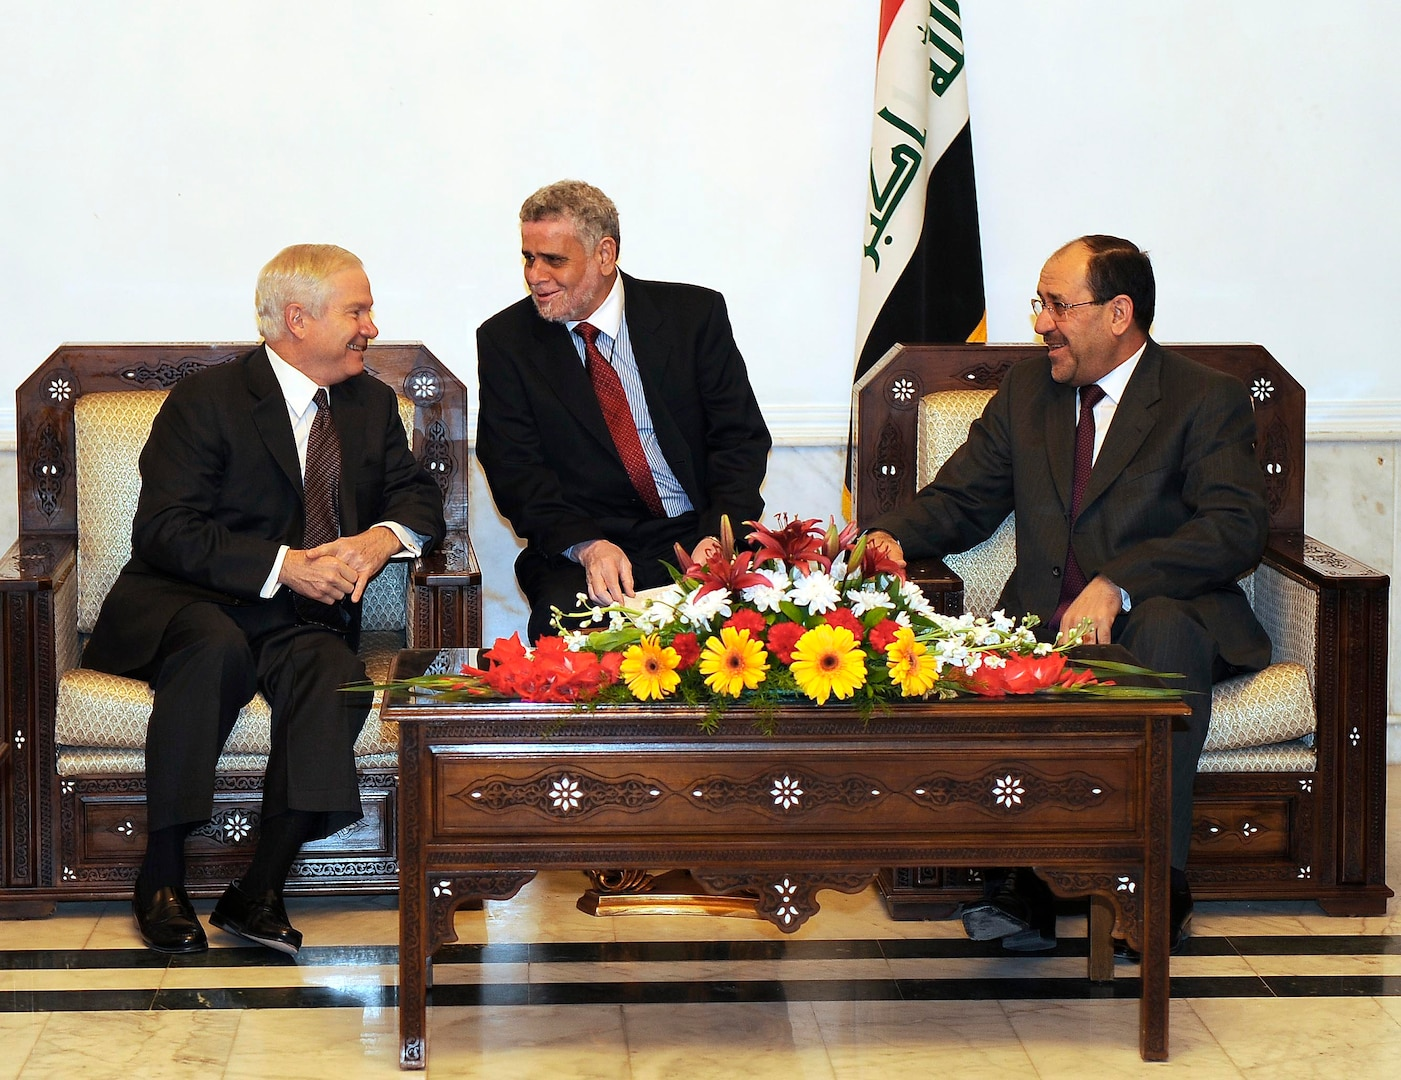 Secretary of Defense Robert M. Gates, left, talks with Iraqi Prime Minister Nouri al-Maliki, right, during a meeting in Baghdad, Iraq, Dec. 11, 2009. (DoD photo by Master Sgt. Jerry Morrison, U.S. Air Force/Released)